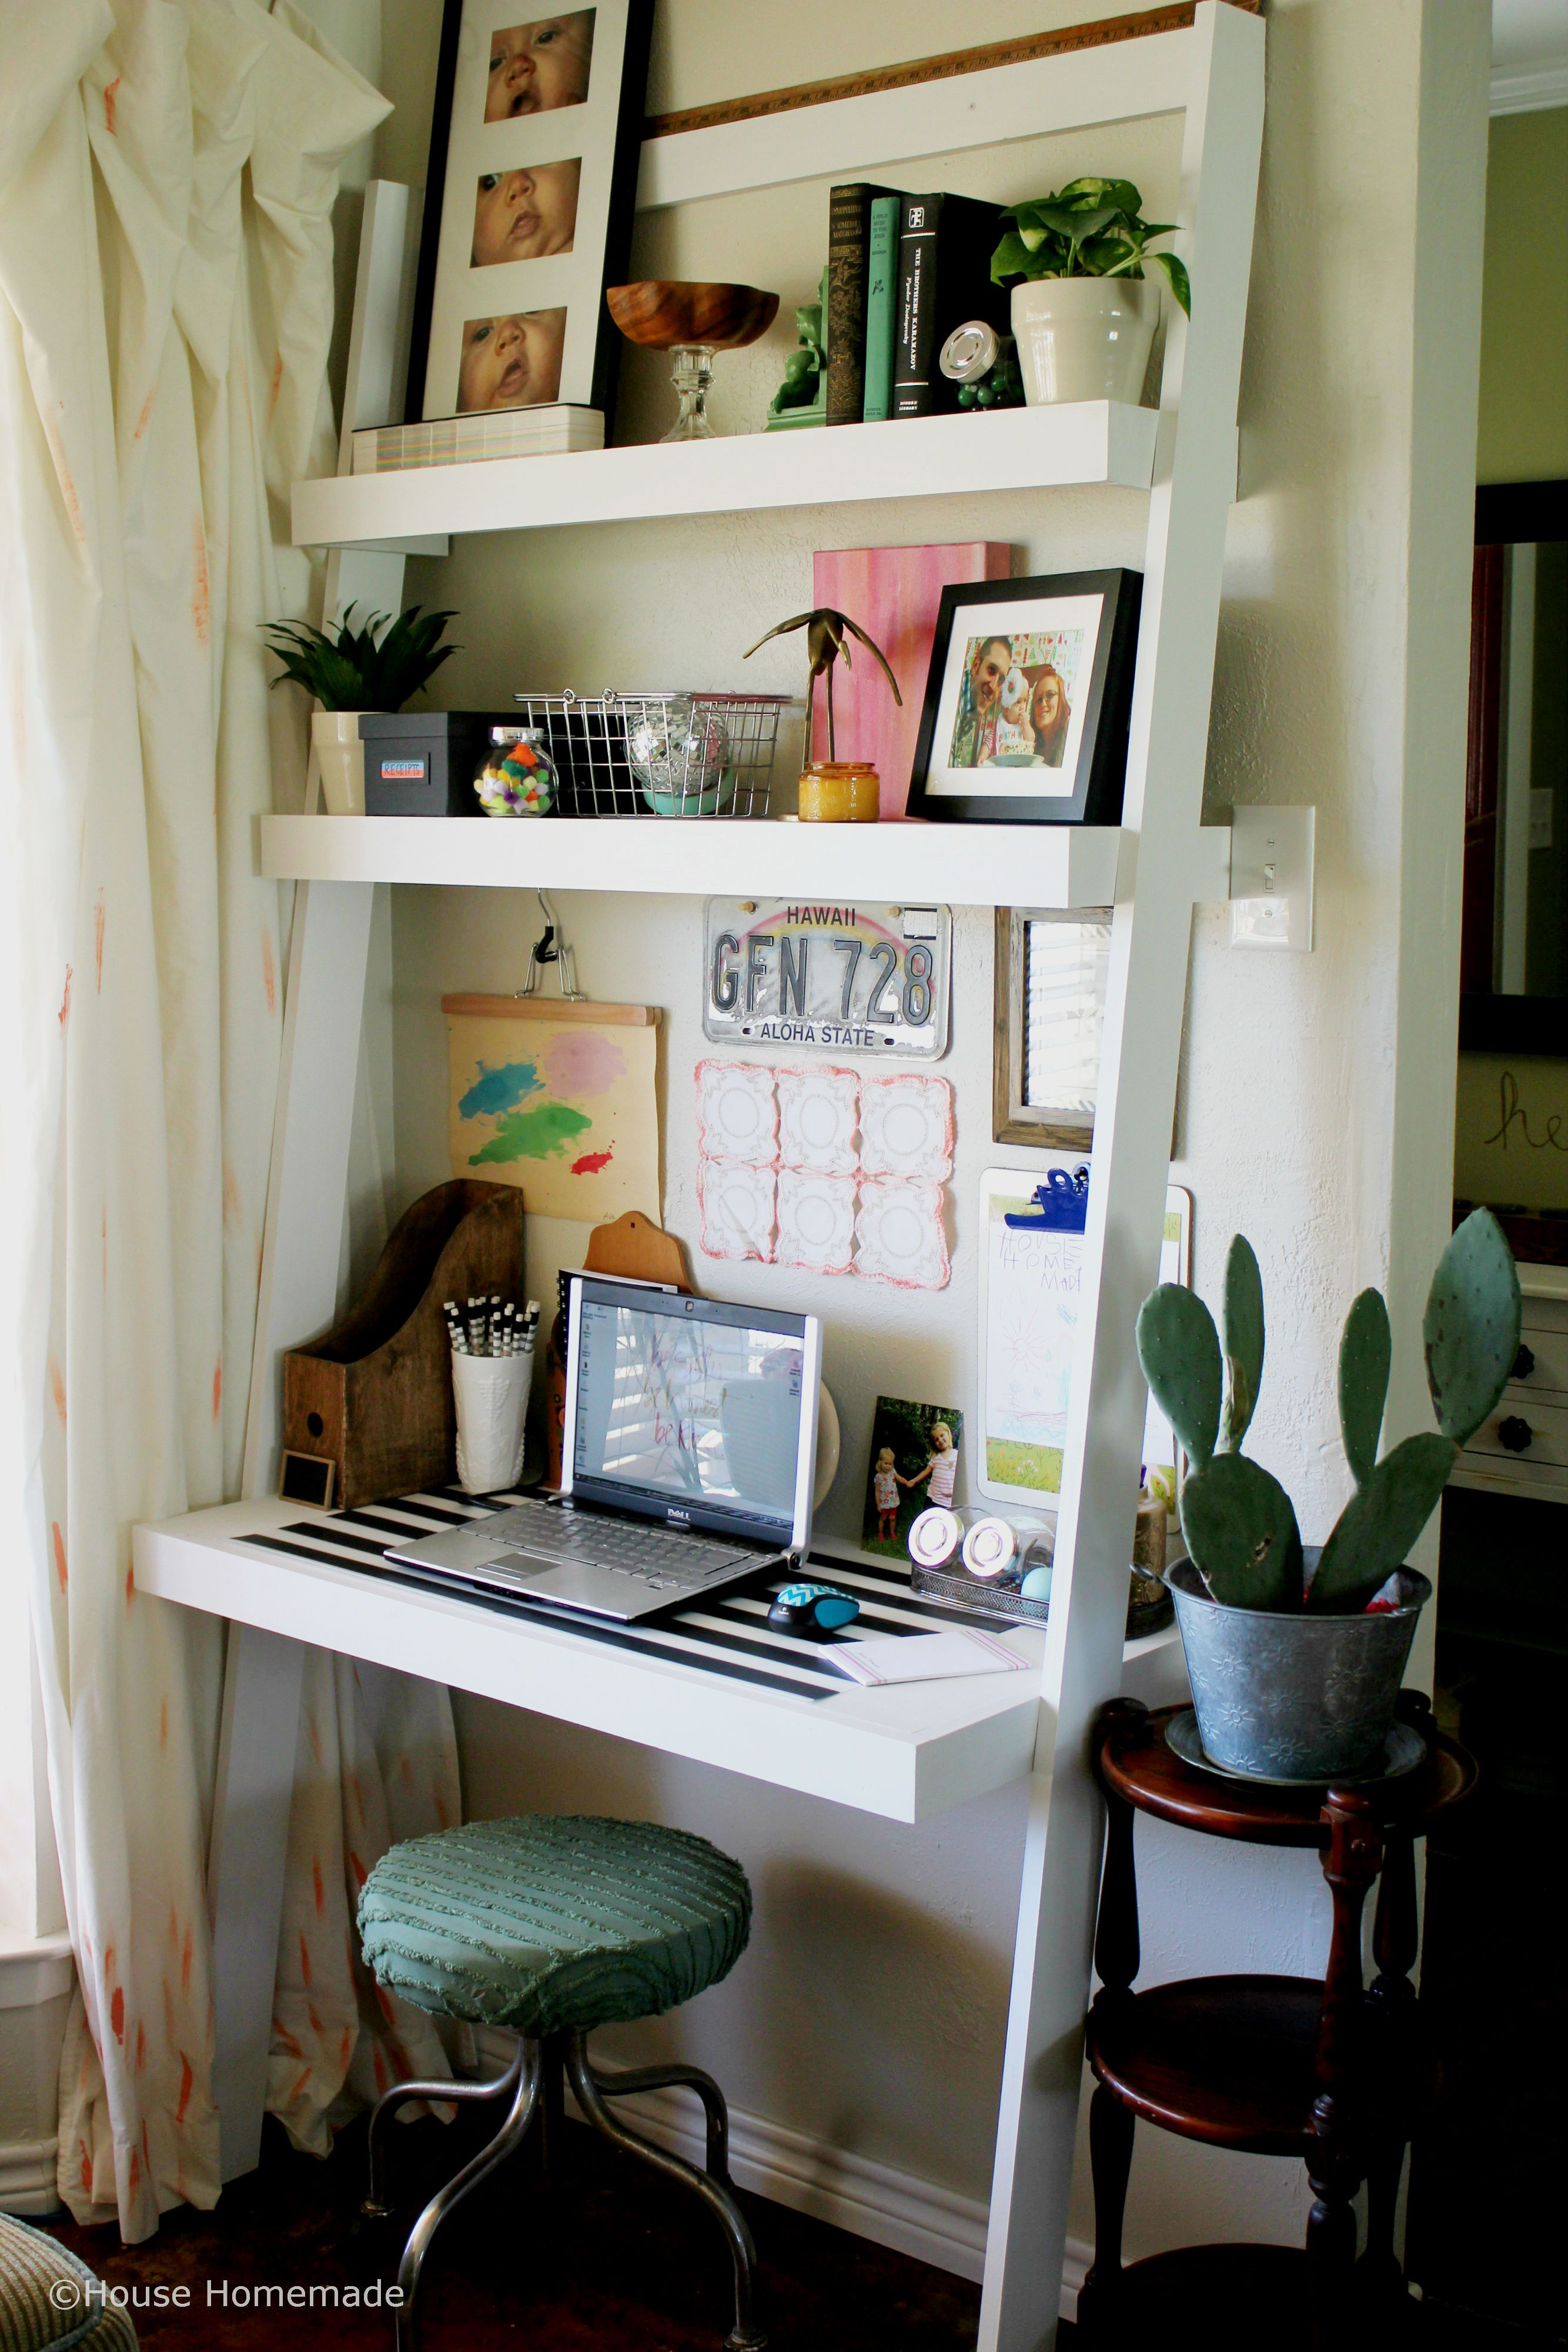 Househomemade do it yourself home projects from ana white new househomemade diy projects solutioingenieria Image collections